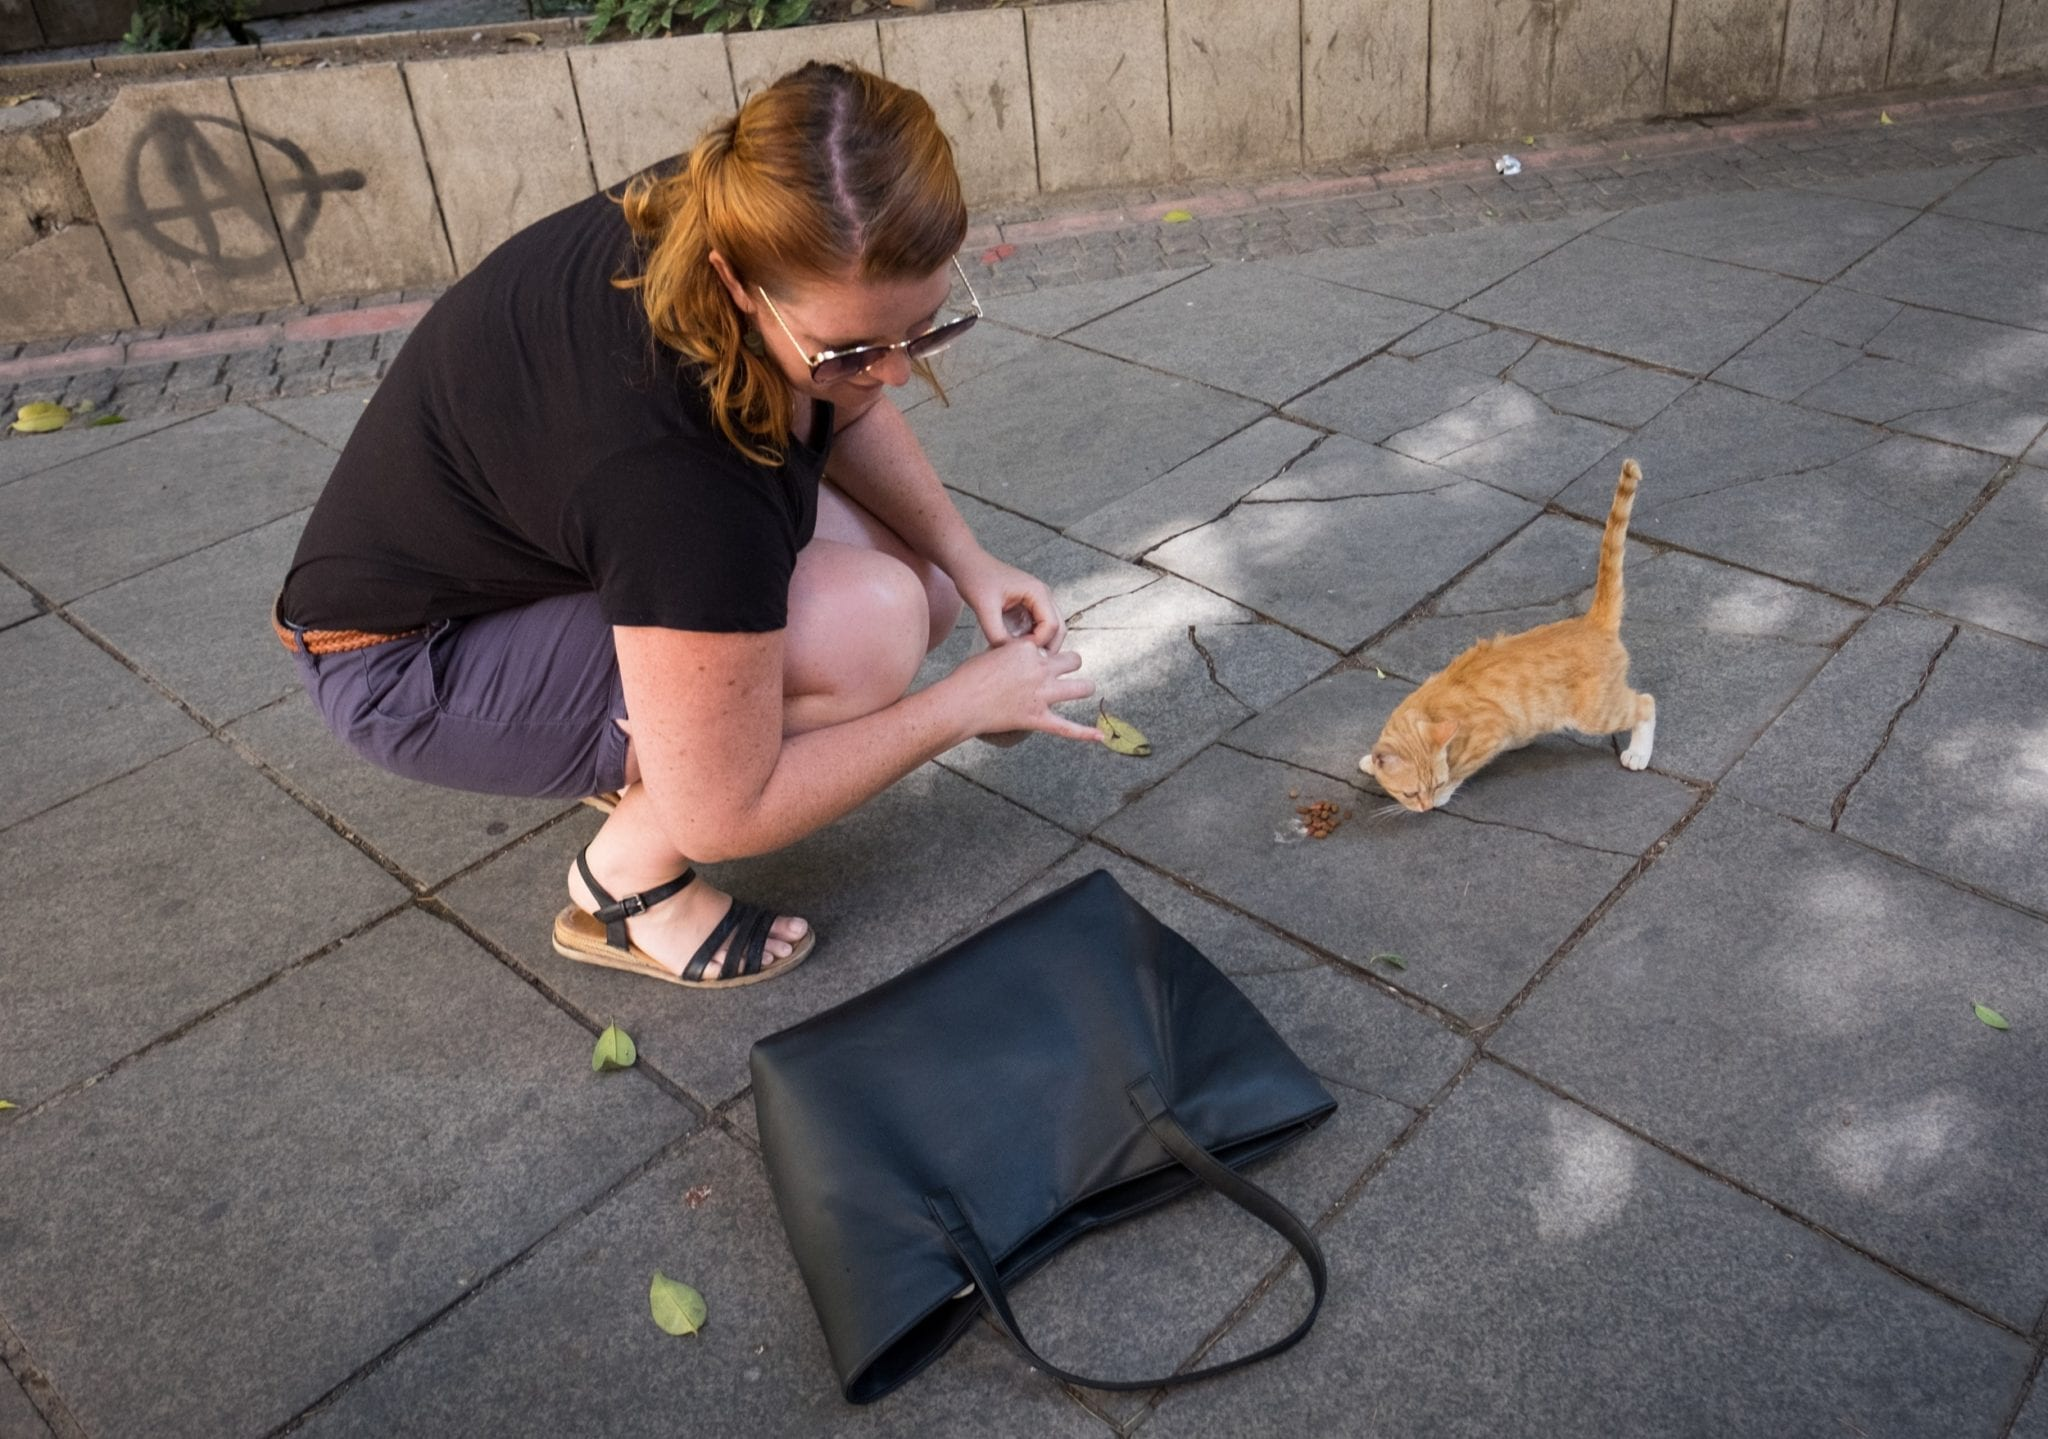 Meg from Food Fun Travel kneels down next to a tiny orange kitten, feeding him from the cat food she keeps in her purse.